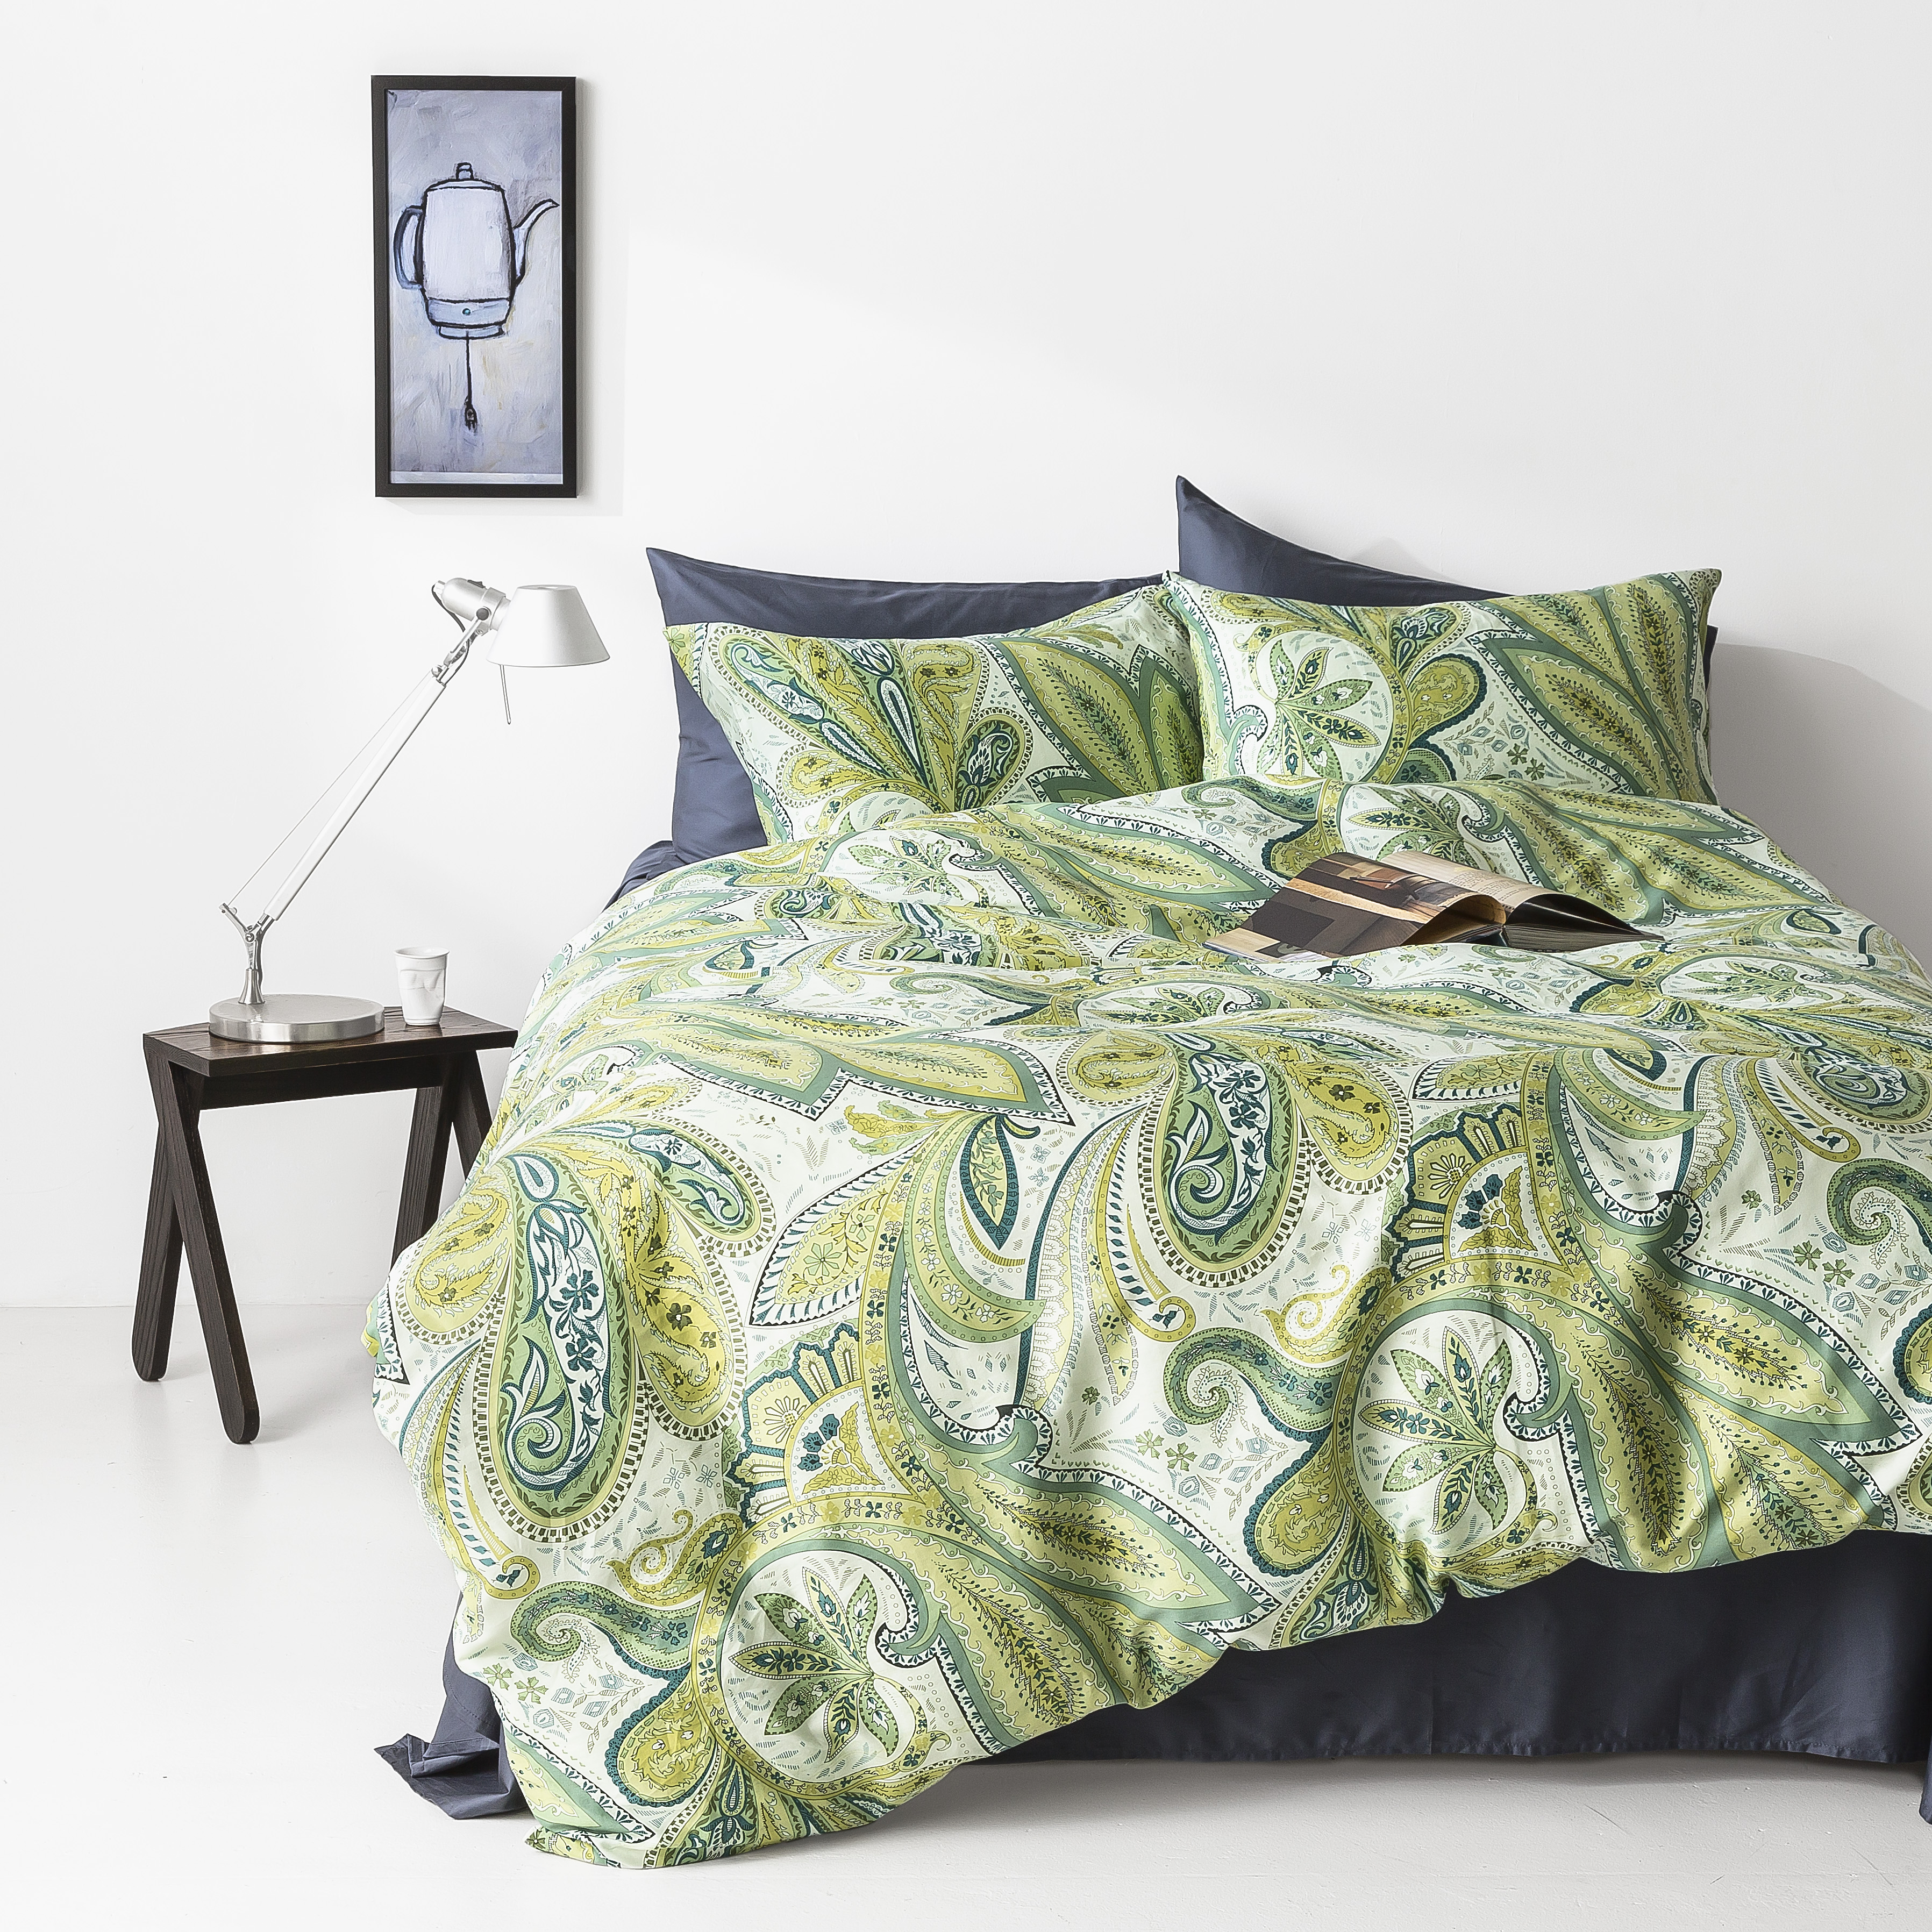 In2linen Paisley 100% Cotton 300 thread Quilt Cover Set | Green